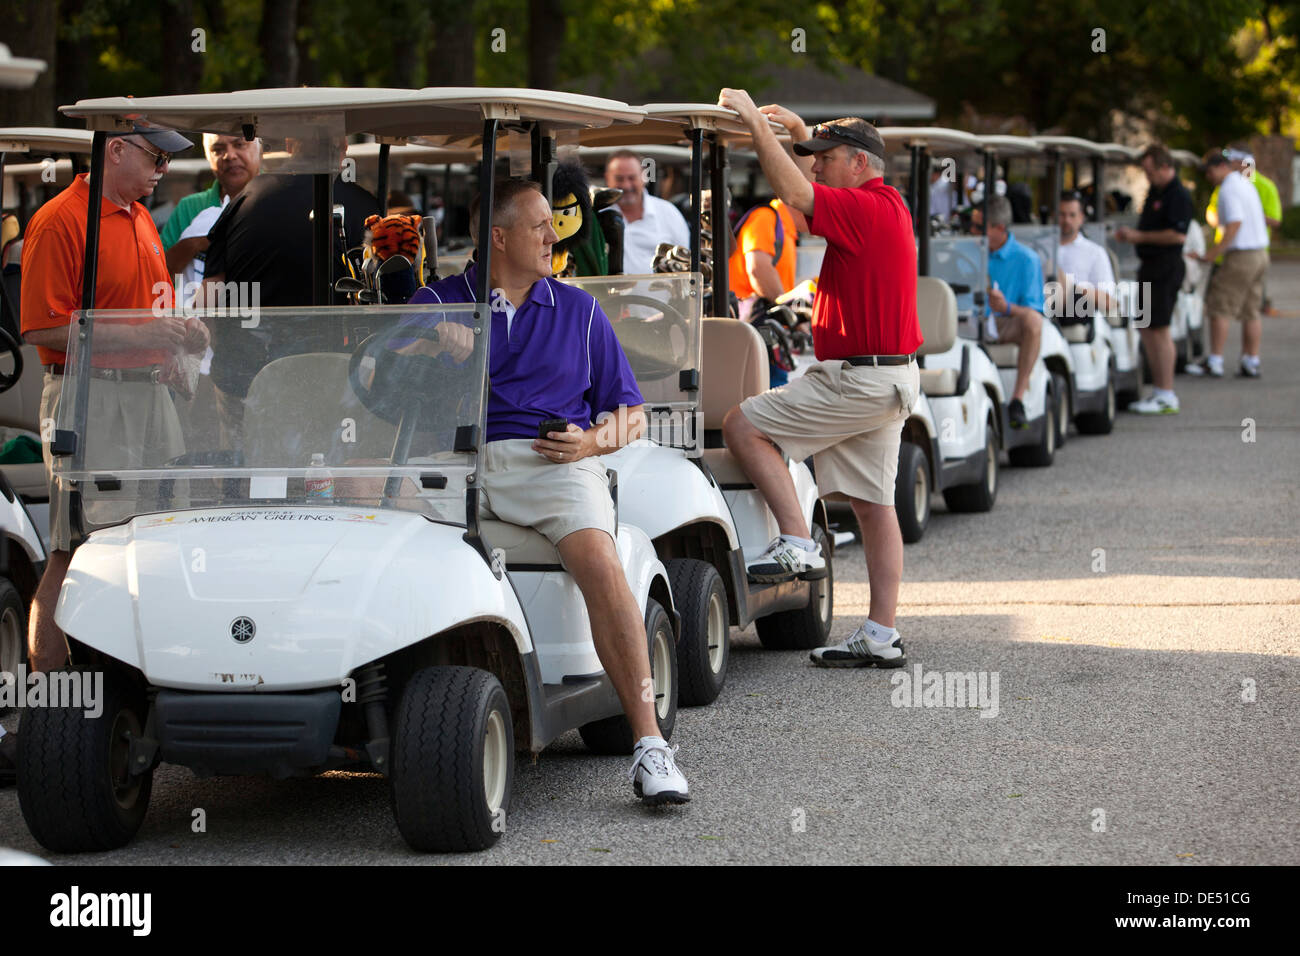 Golfers wait with their carts parade for the start of a golf tournament in Bella Vista, Arkansas. - Stock Image